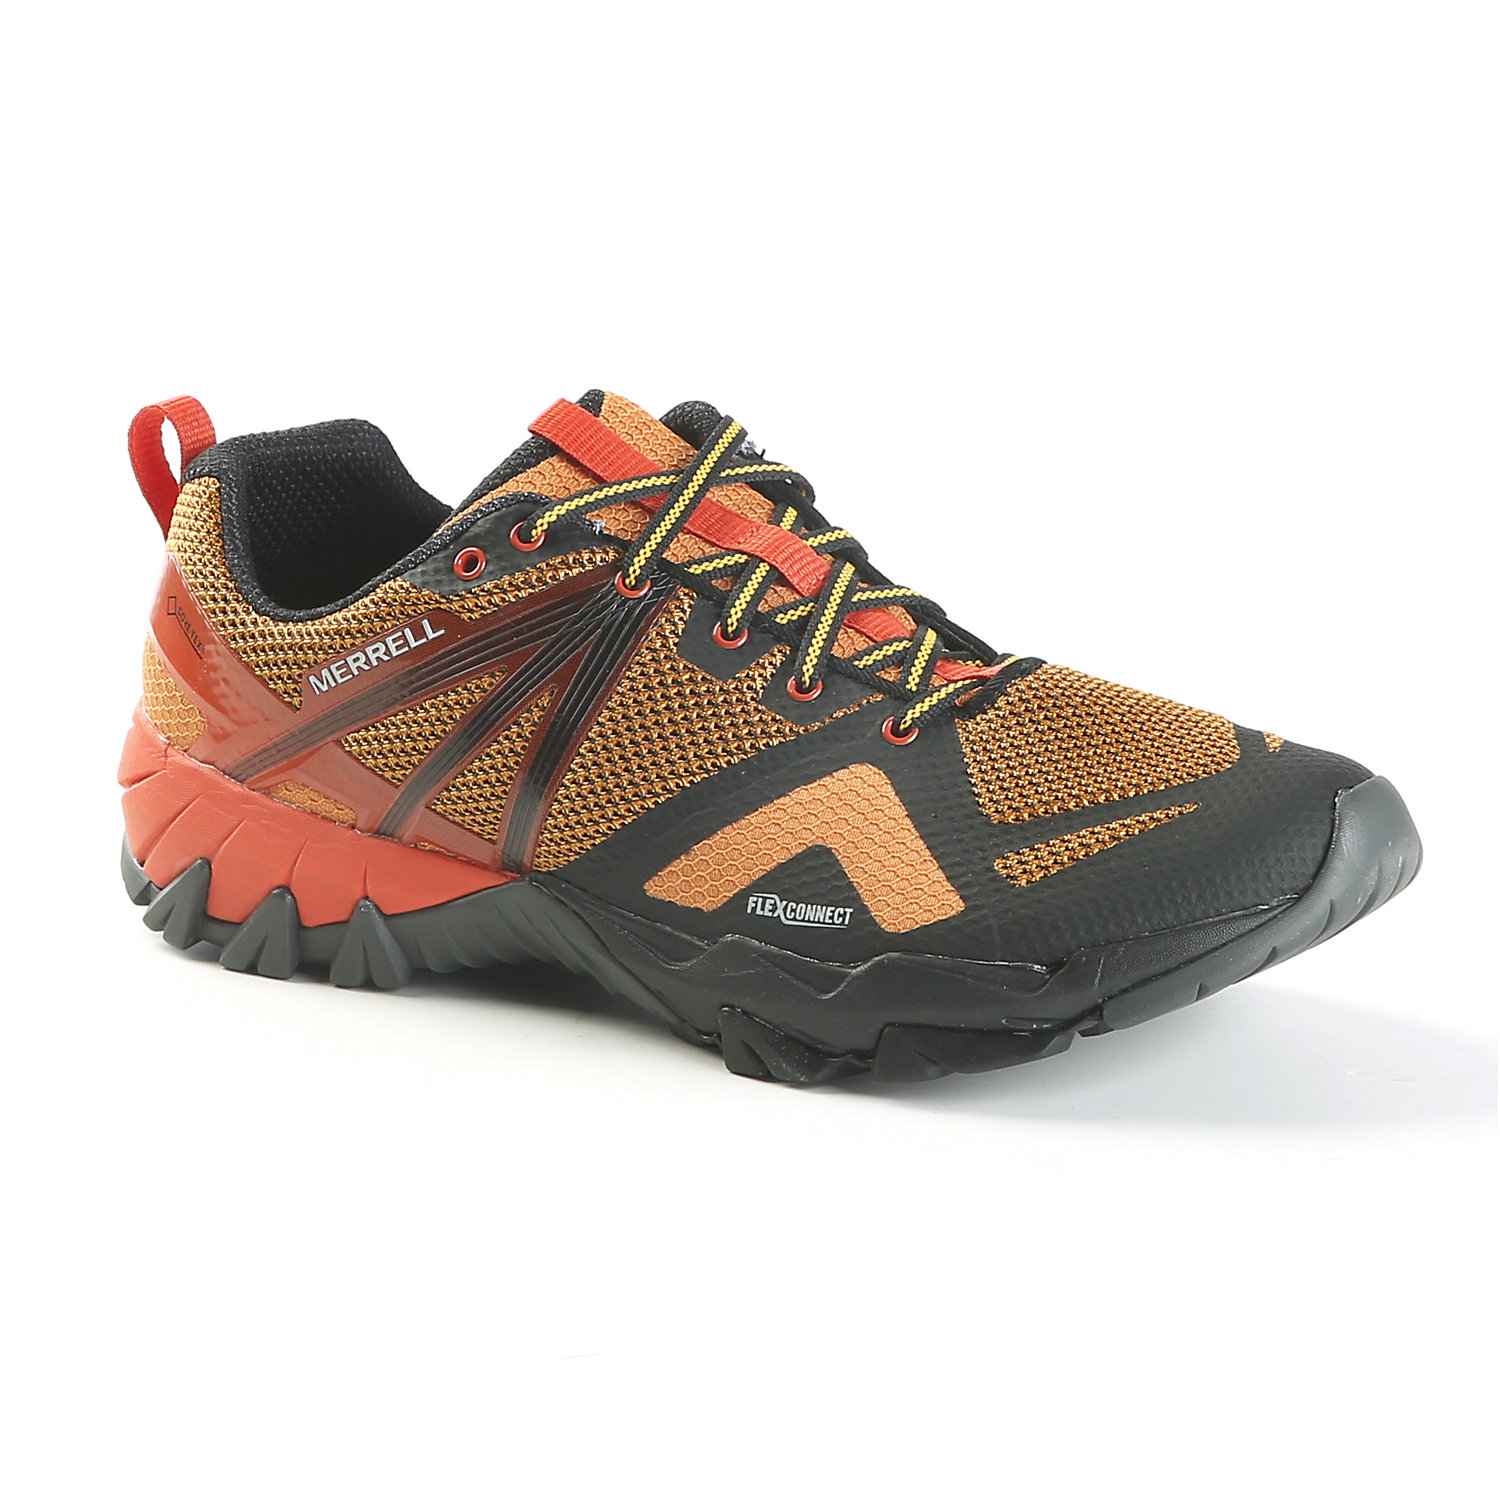 Merrell Merrell Women's MQM Flex Gore Tex Shoe 10 Grey Black from Moosejaw | People